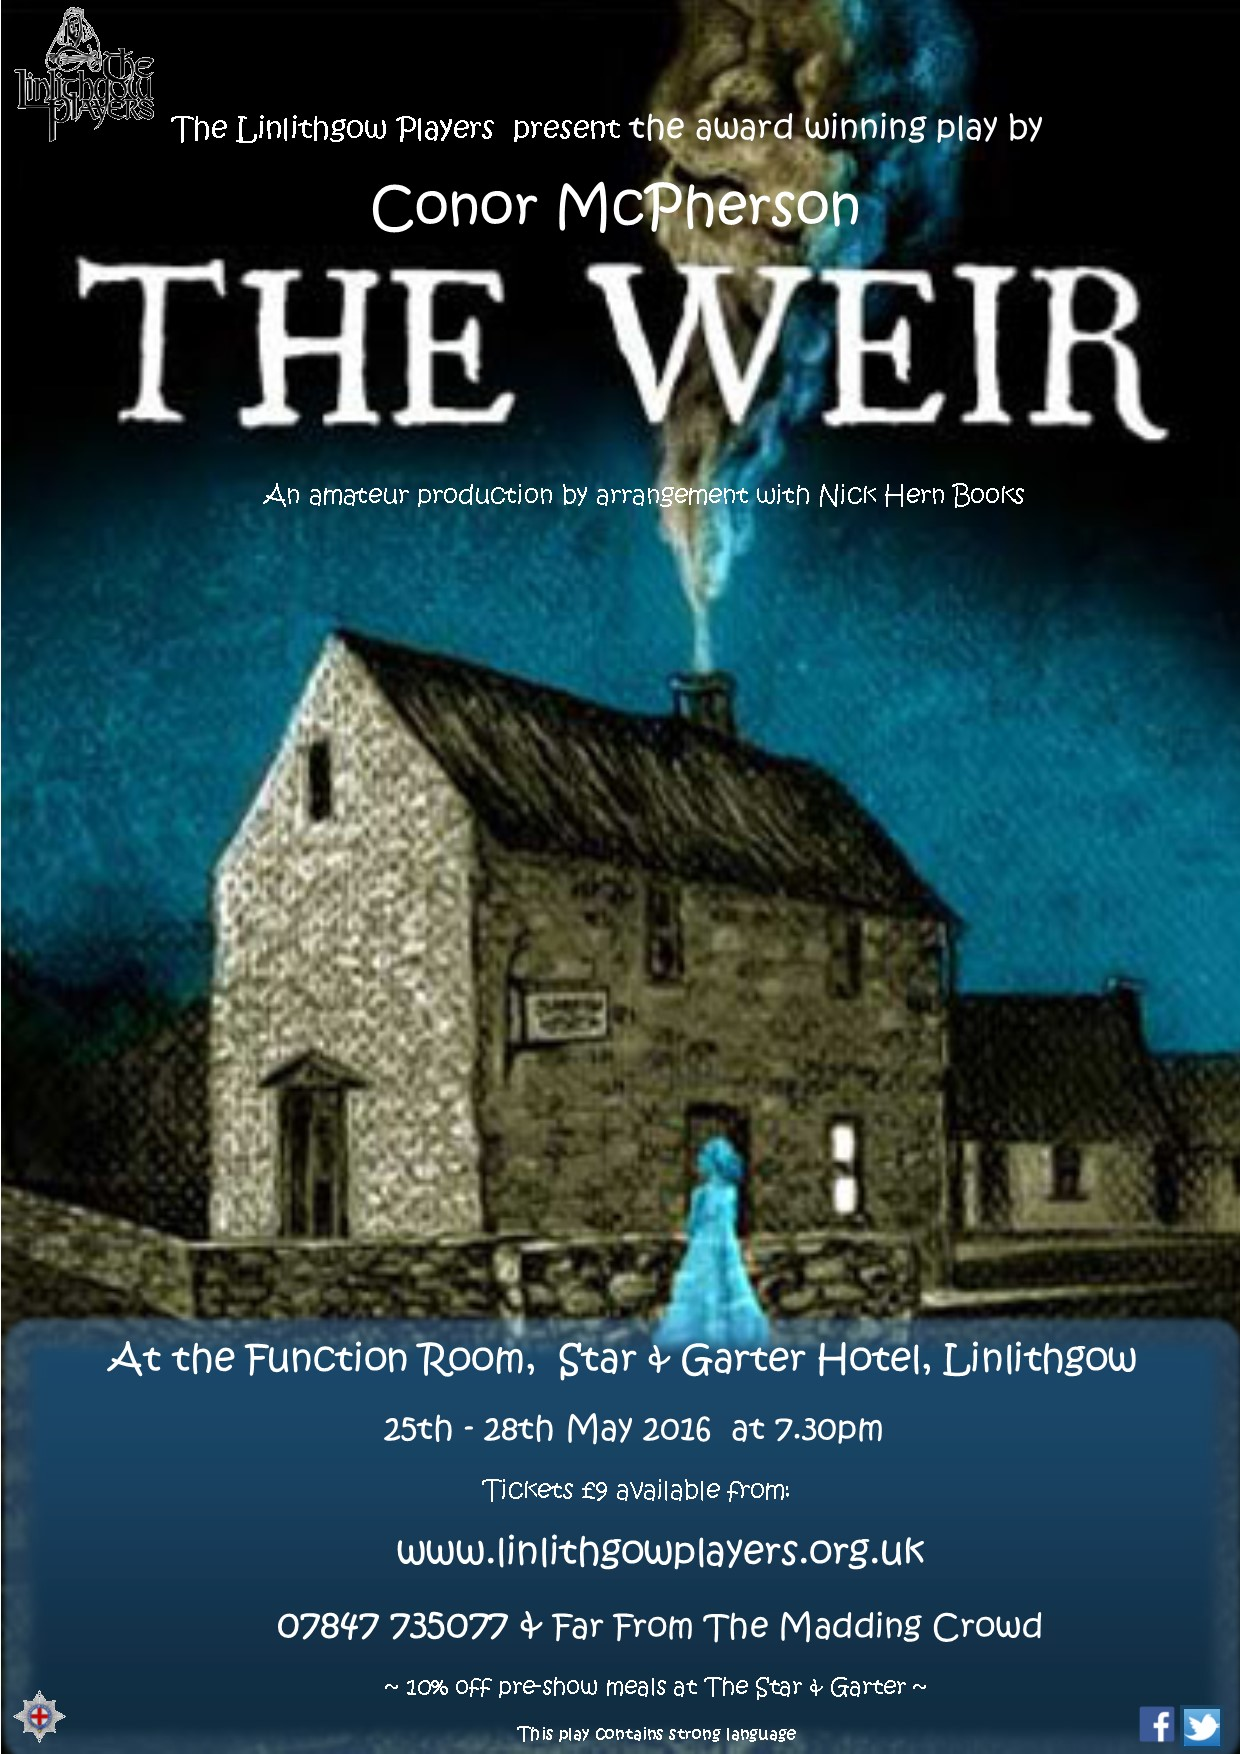 Nick Hern Books - Plays to Perform - Advertise Your Show images - The Weir Linlithgow